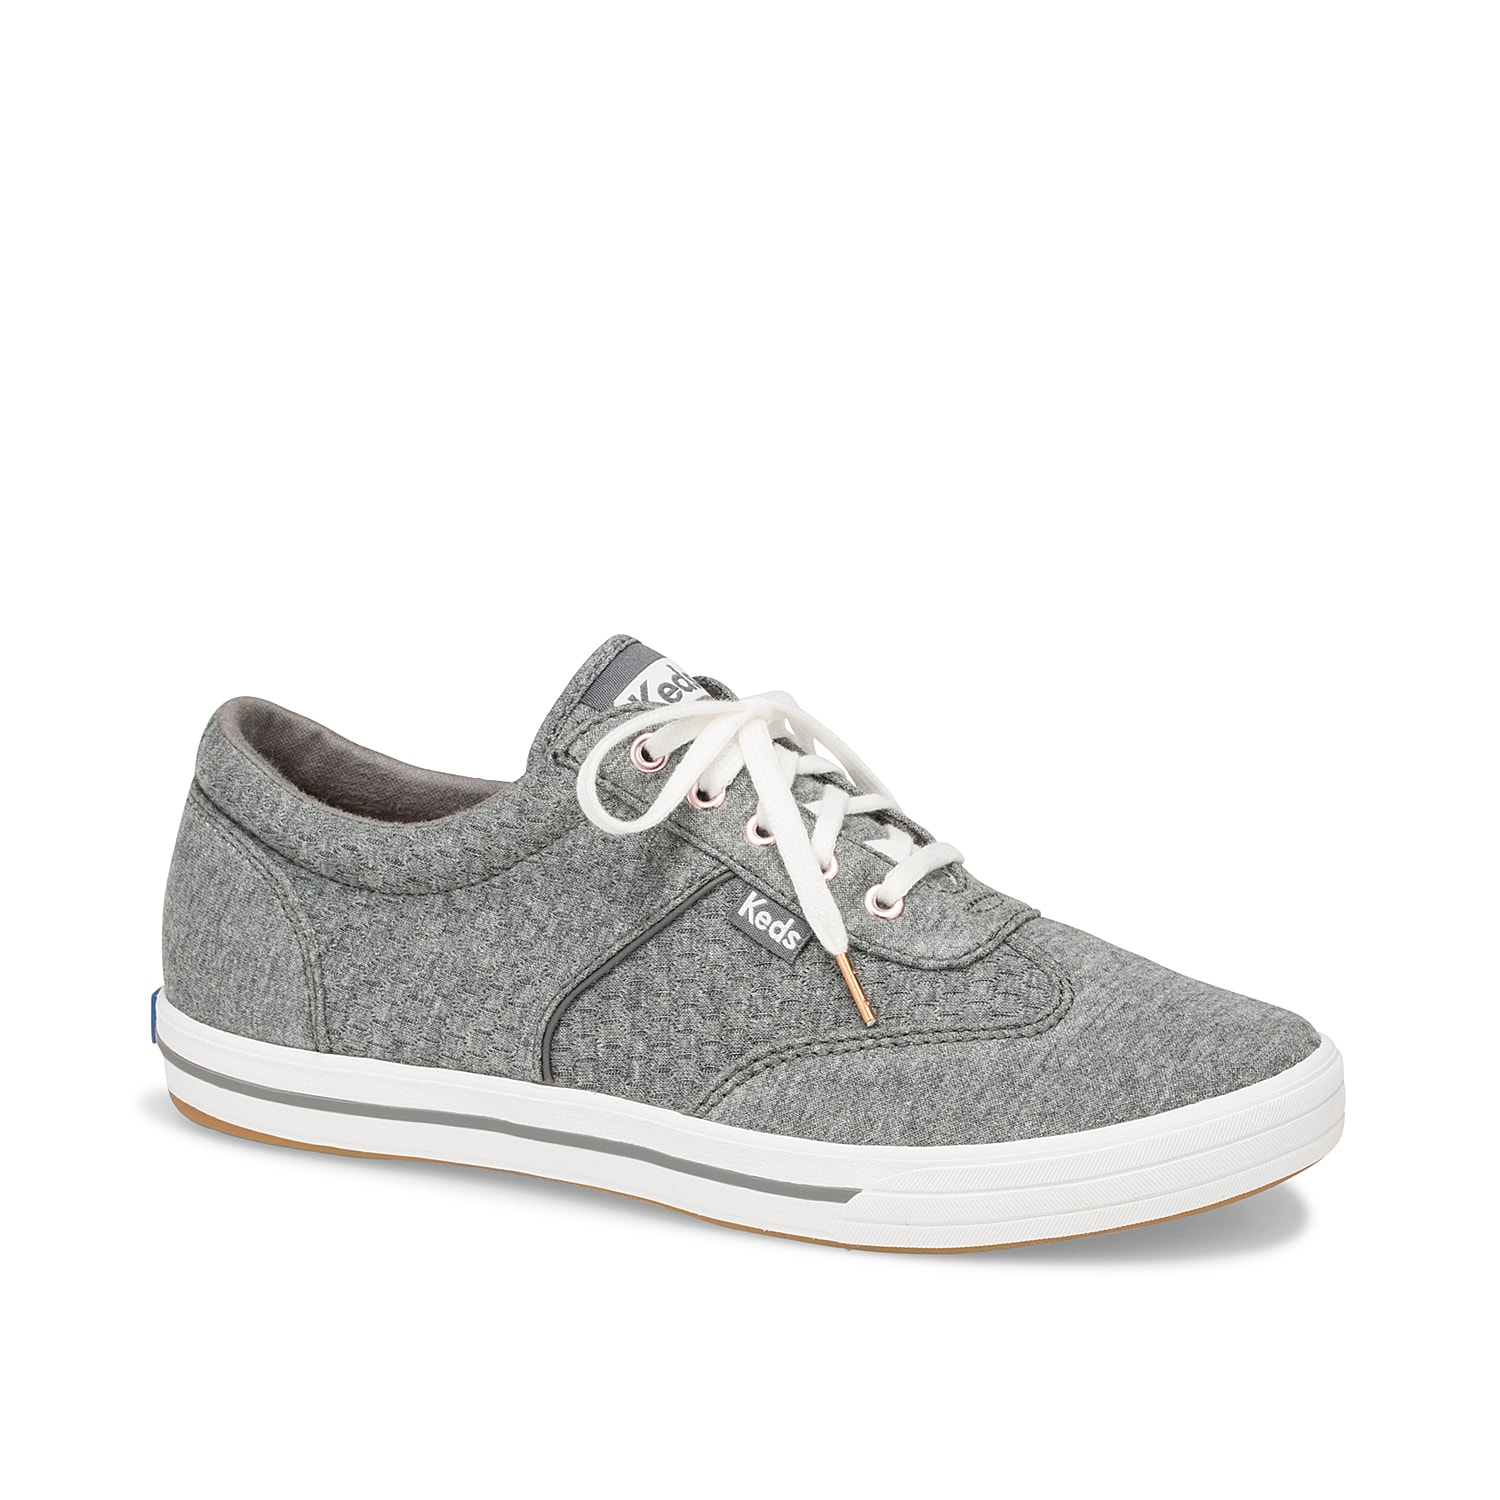 Sporty style gets rejuvenated with feminine detailing in the Keds Courty sneaker. Comprising cushioning memory foam footbed and plush jersey lining, this tennis shoe has a rubber sole for improved traction.